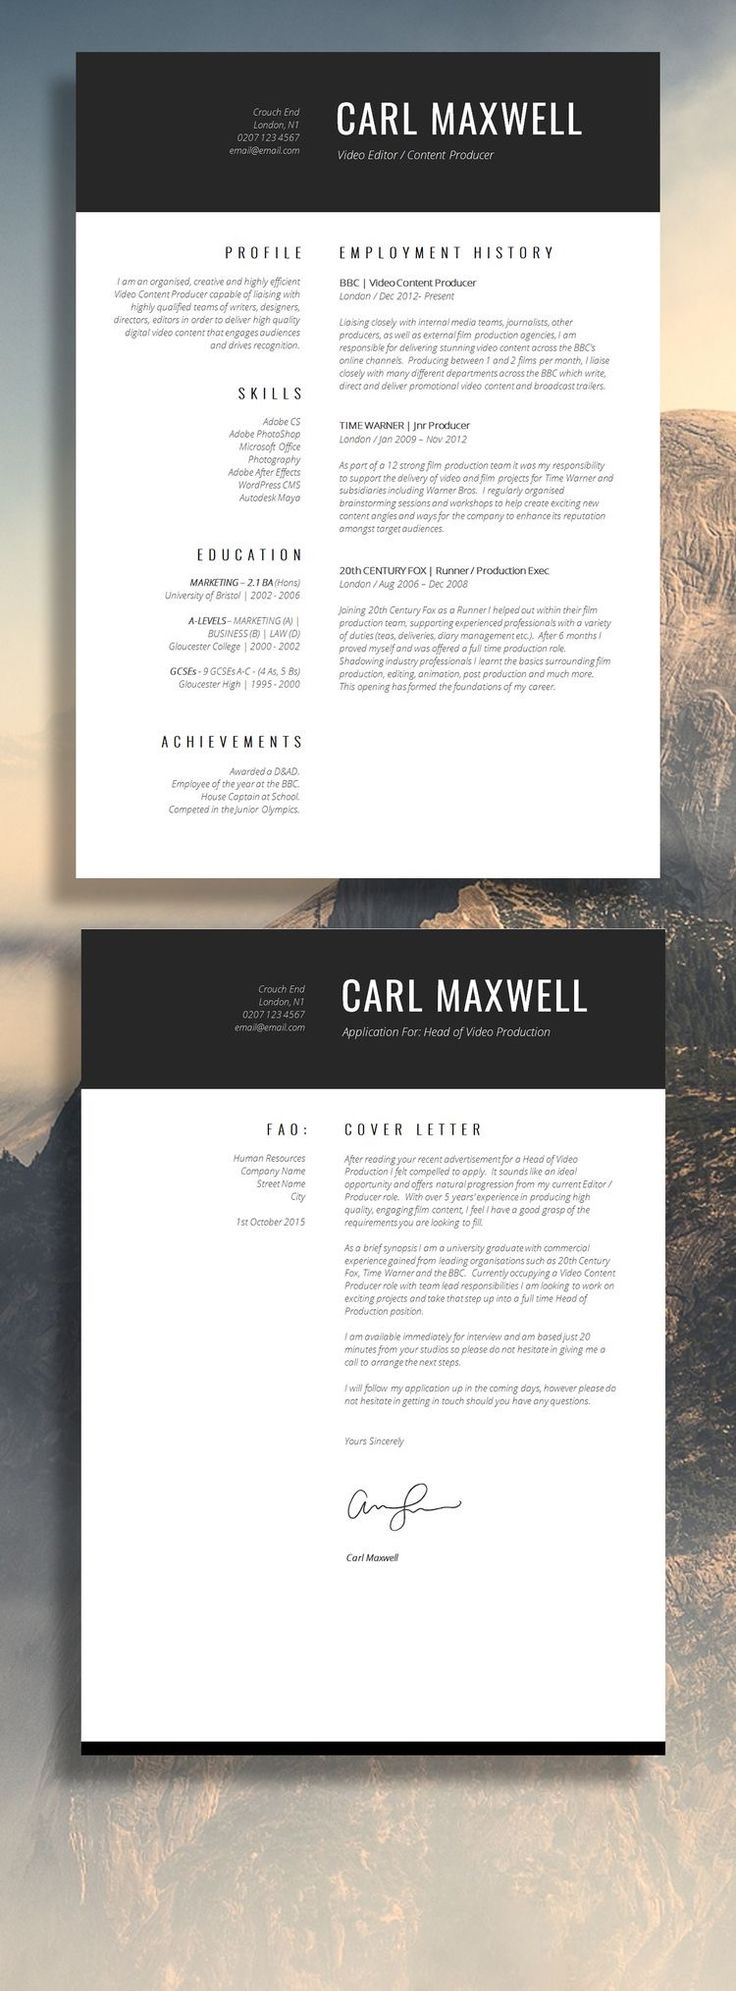 Production Editor Resume 12 Best Cv Images On Pinterest  Resume Design Resume Templates And .